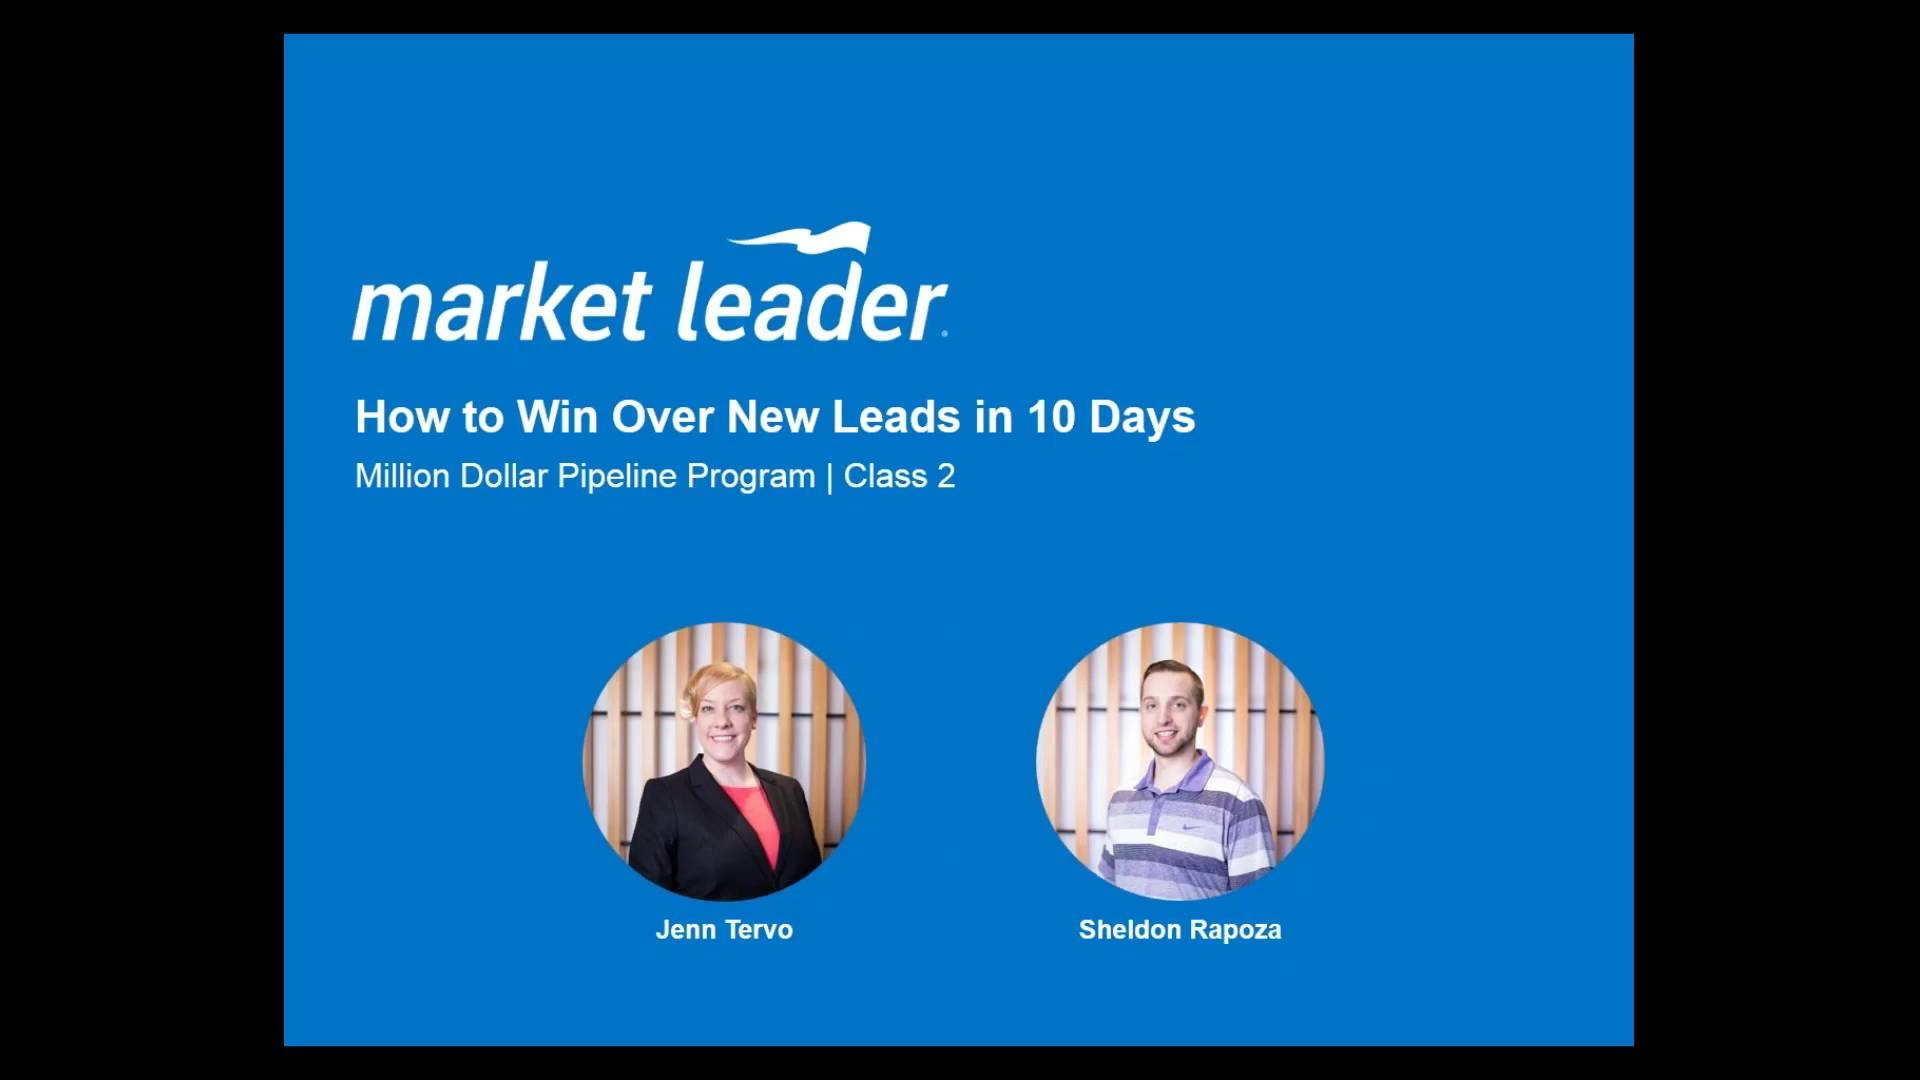 MDPP Class 2: How to Win Over New Leads in 10 Days